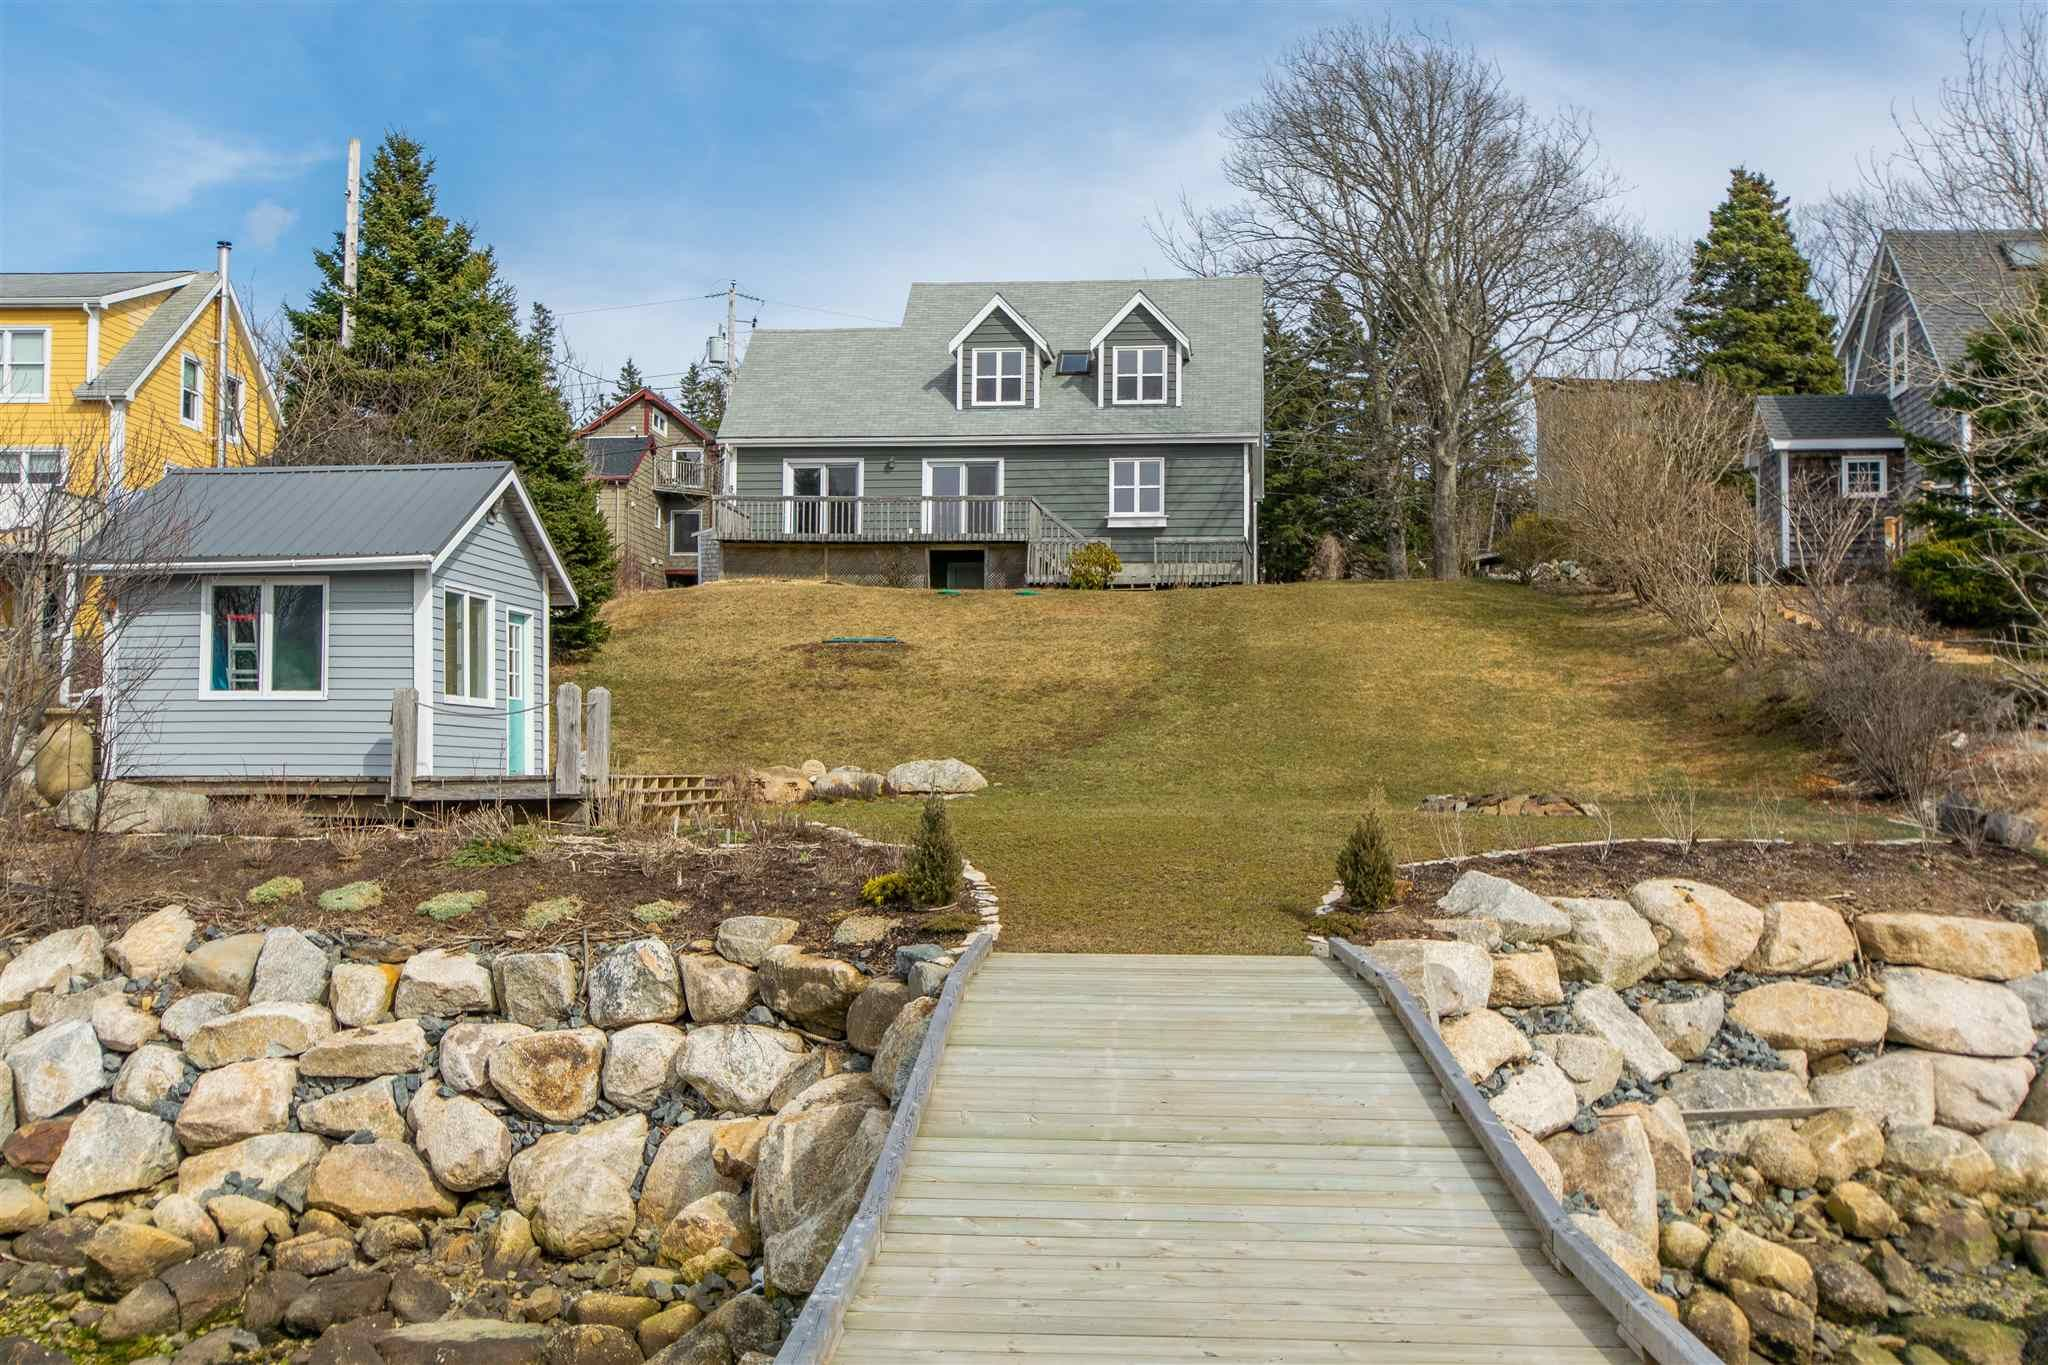 Photo 29: Photos: 63 Shore Road in Herring Cove: 8-Armdale/Purcell`s Cove/Herring Cove Residential for sale (Halifax-Dartmouth)  : MLS®# 202107484